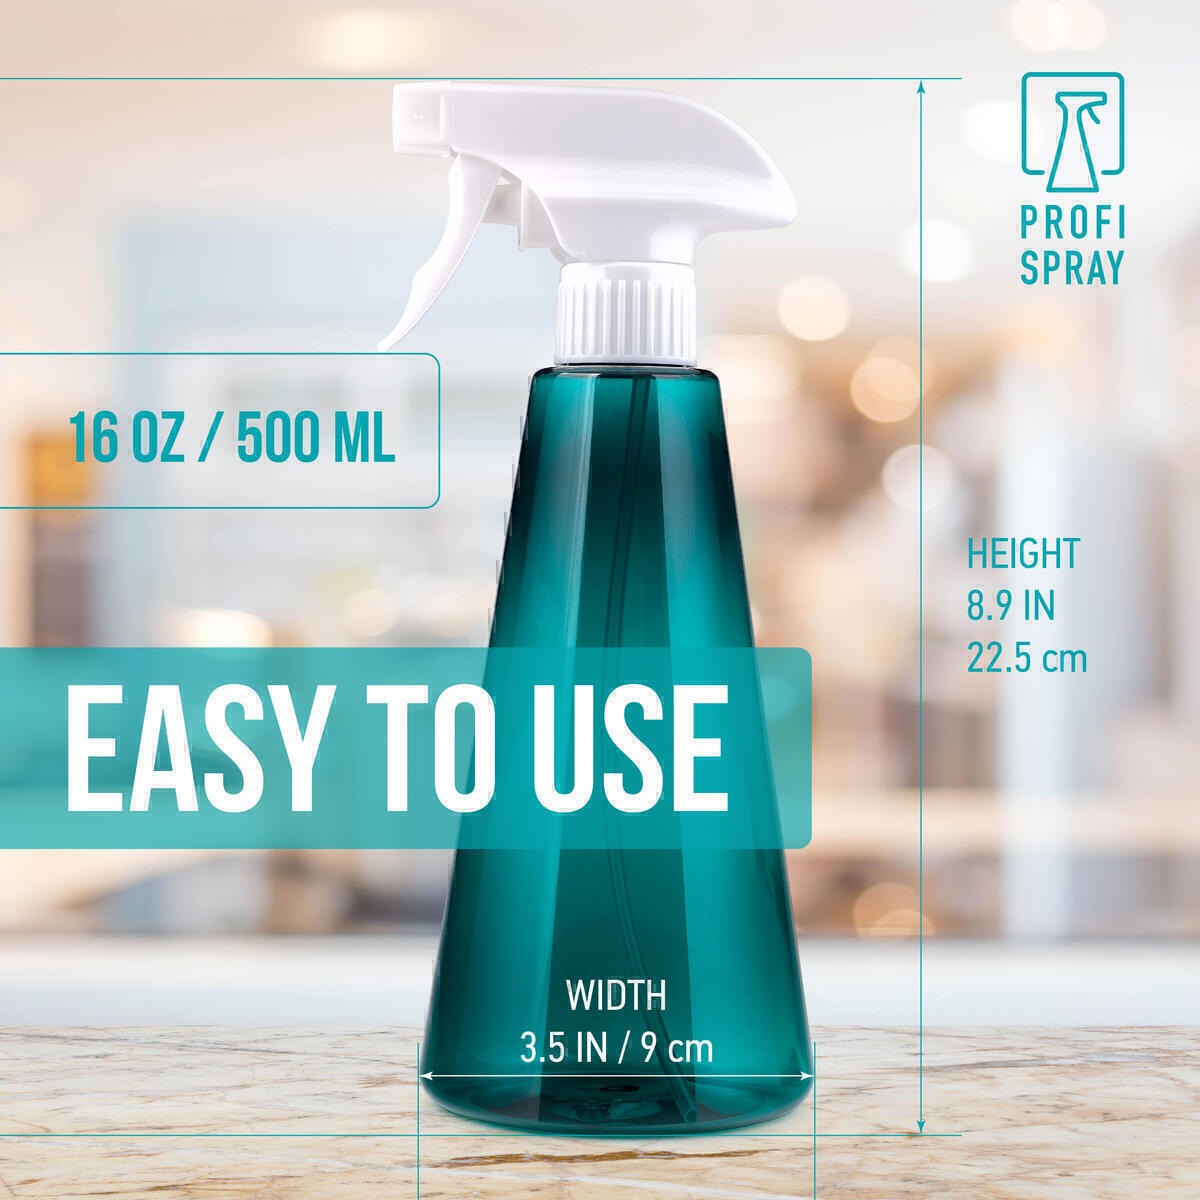 Empty Plastic Spray Bottles 16 oz 500 ml (3 Pack) - Refillable Trigger Sprayer with Off, Mist and Stream Modes for Gardening, Watering Plants, Hair Face Care, Aromatherapy, Cleaning Products